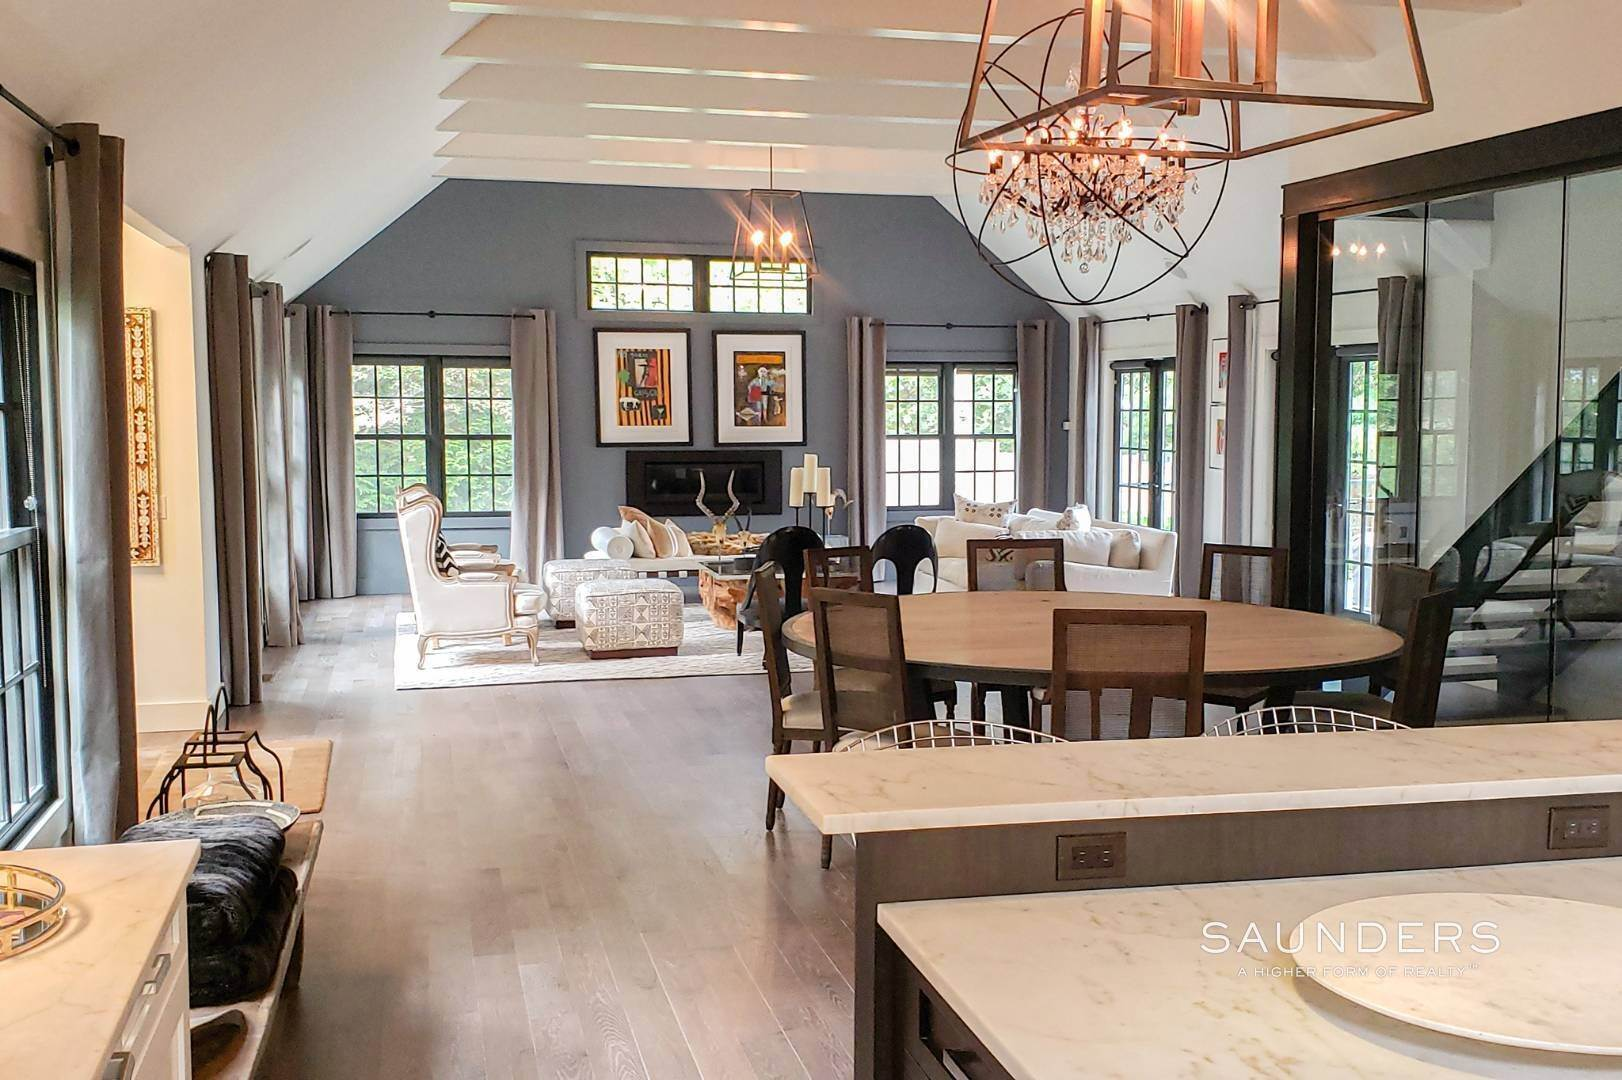 5. Single Family Homes for Sale at Spacious And Private, Consummate Style In Sag Harbor Village 22 Carver Street, Sag Harbor, Southampton Town, NY 11963